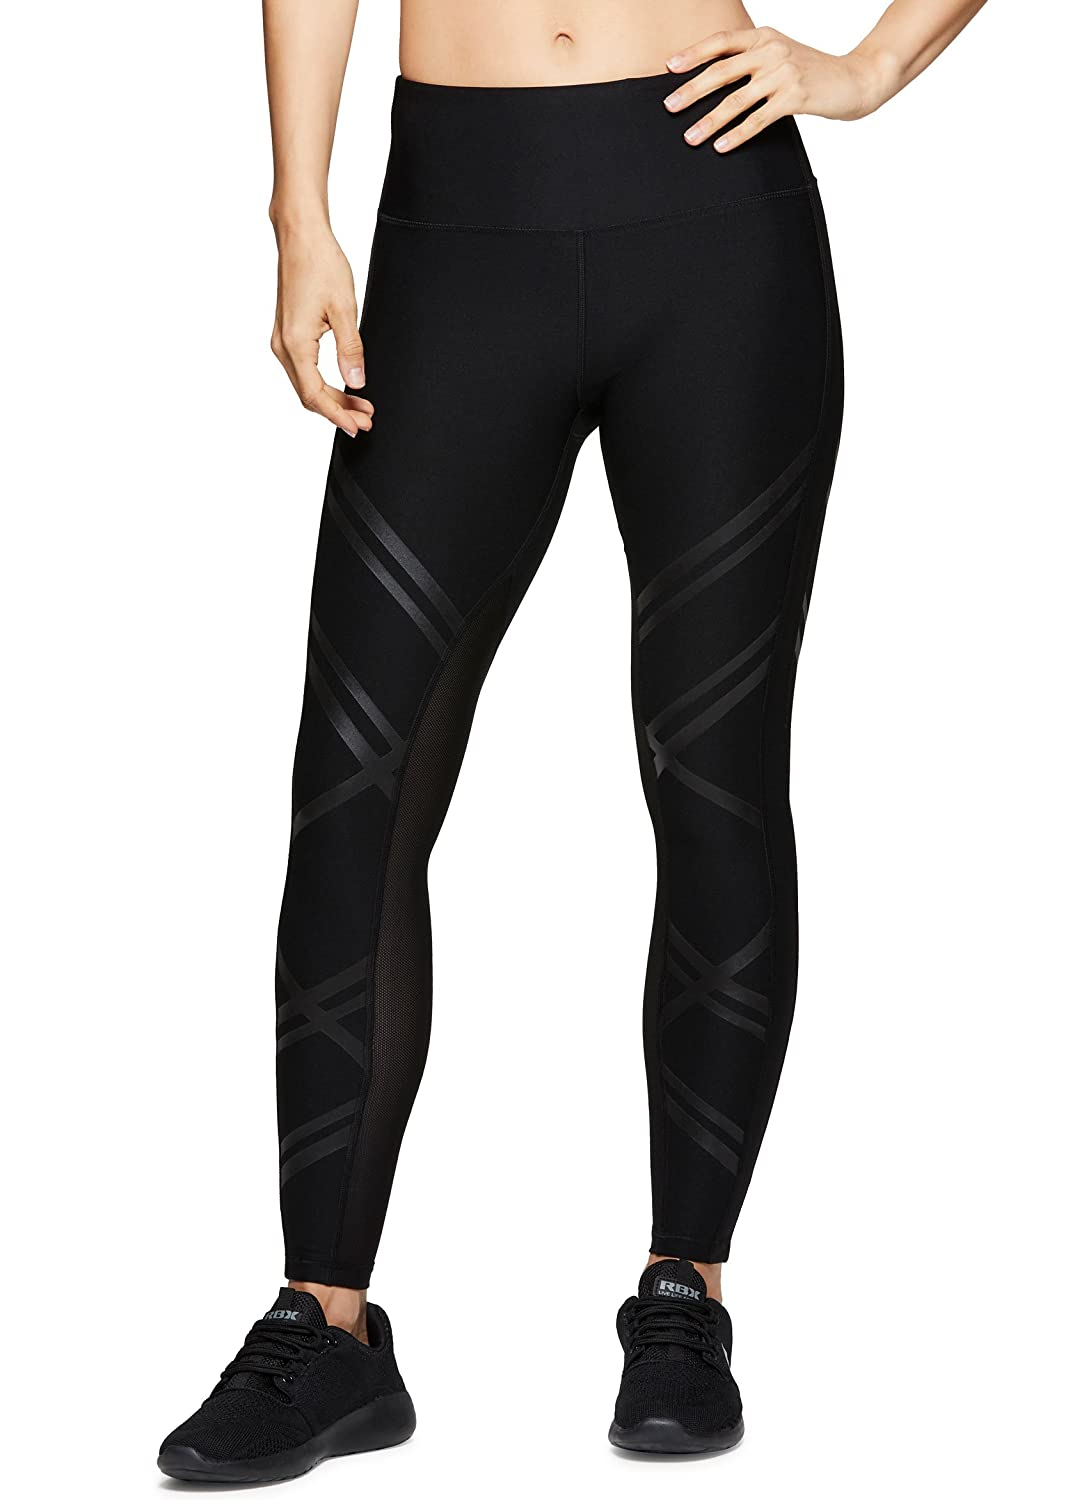 Black Spring Combo RBX Active Women's Workout Yoga 7 8 Ankle Legging with Side Detail